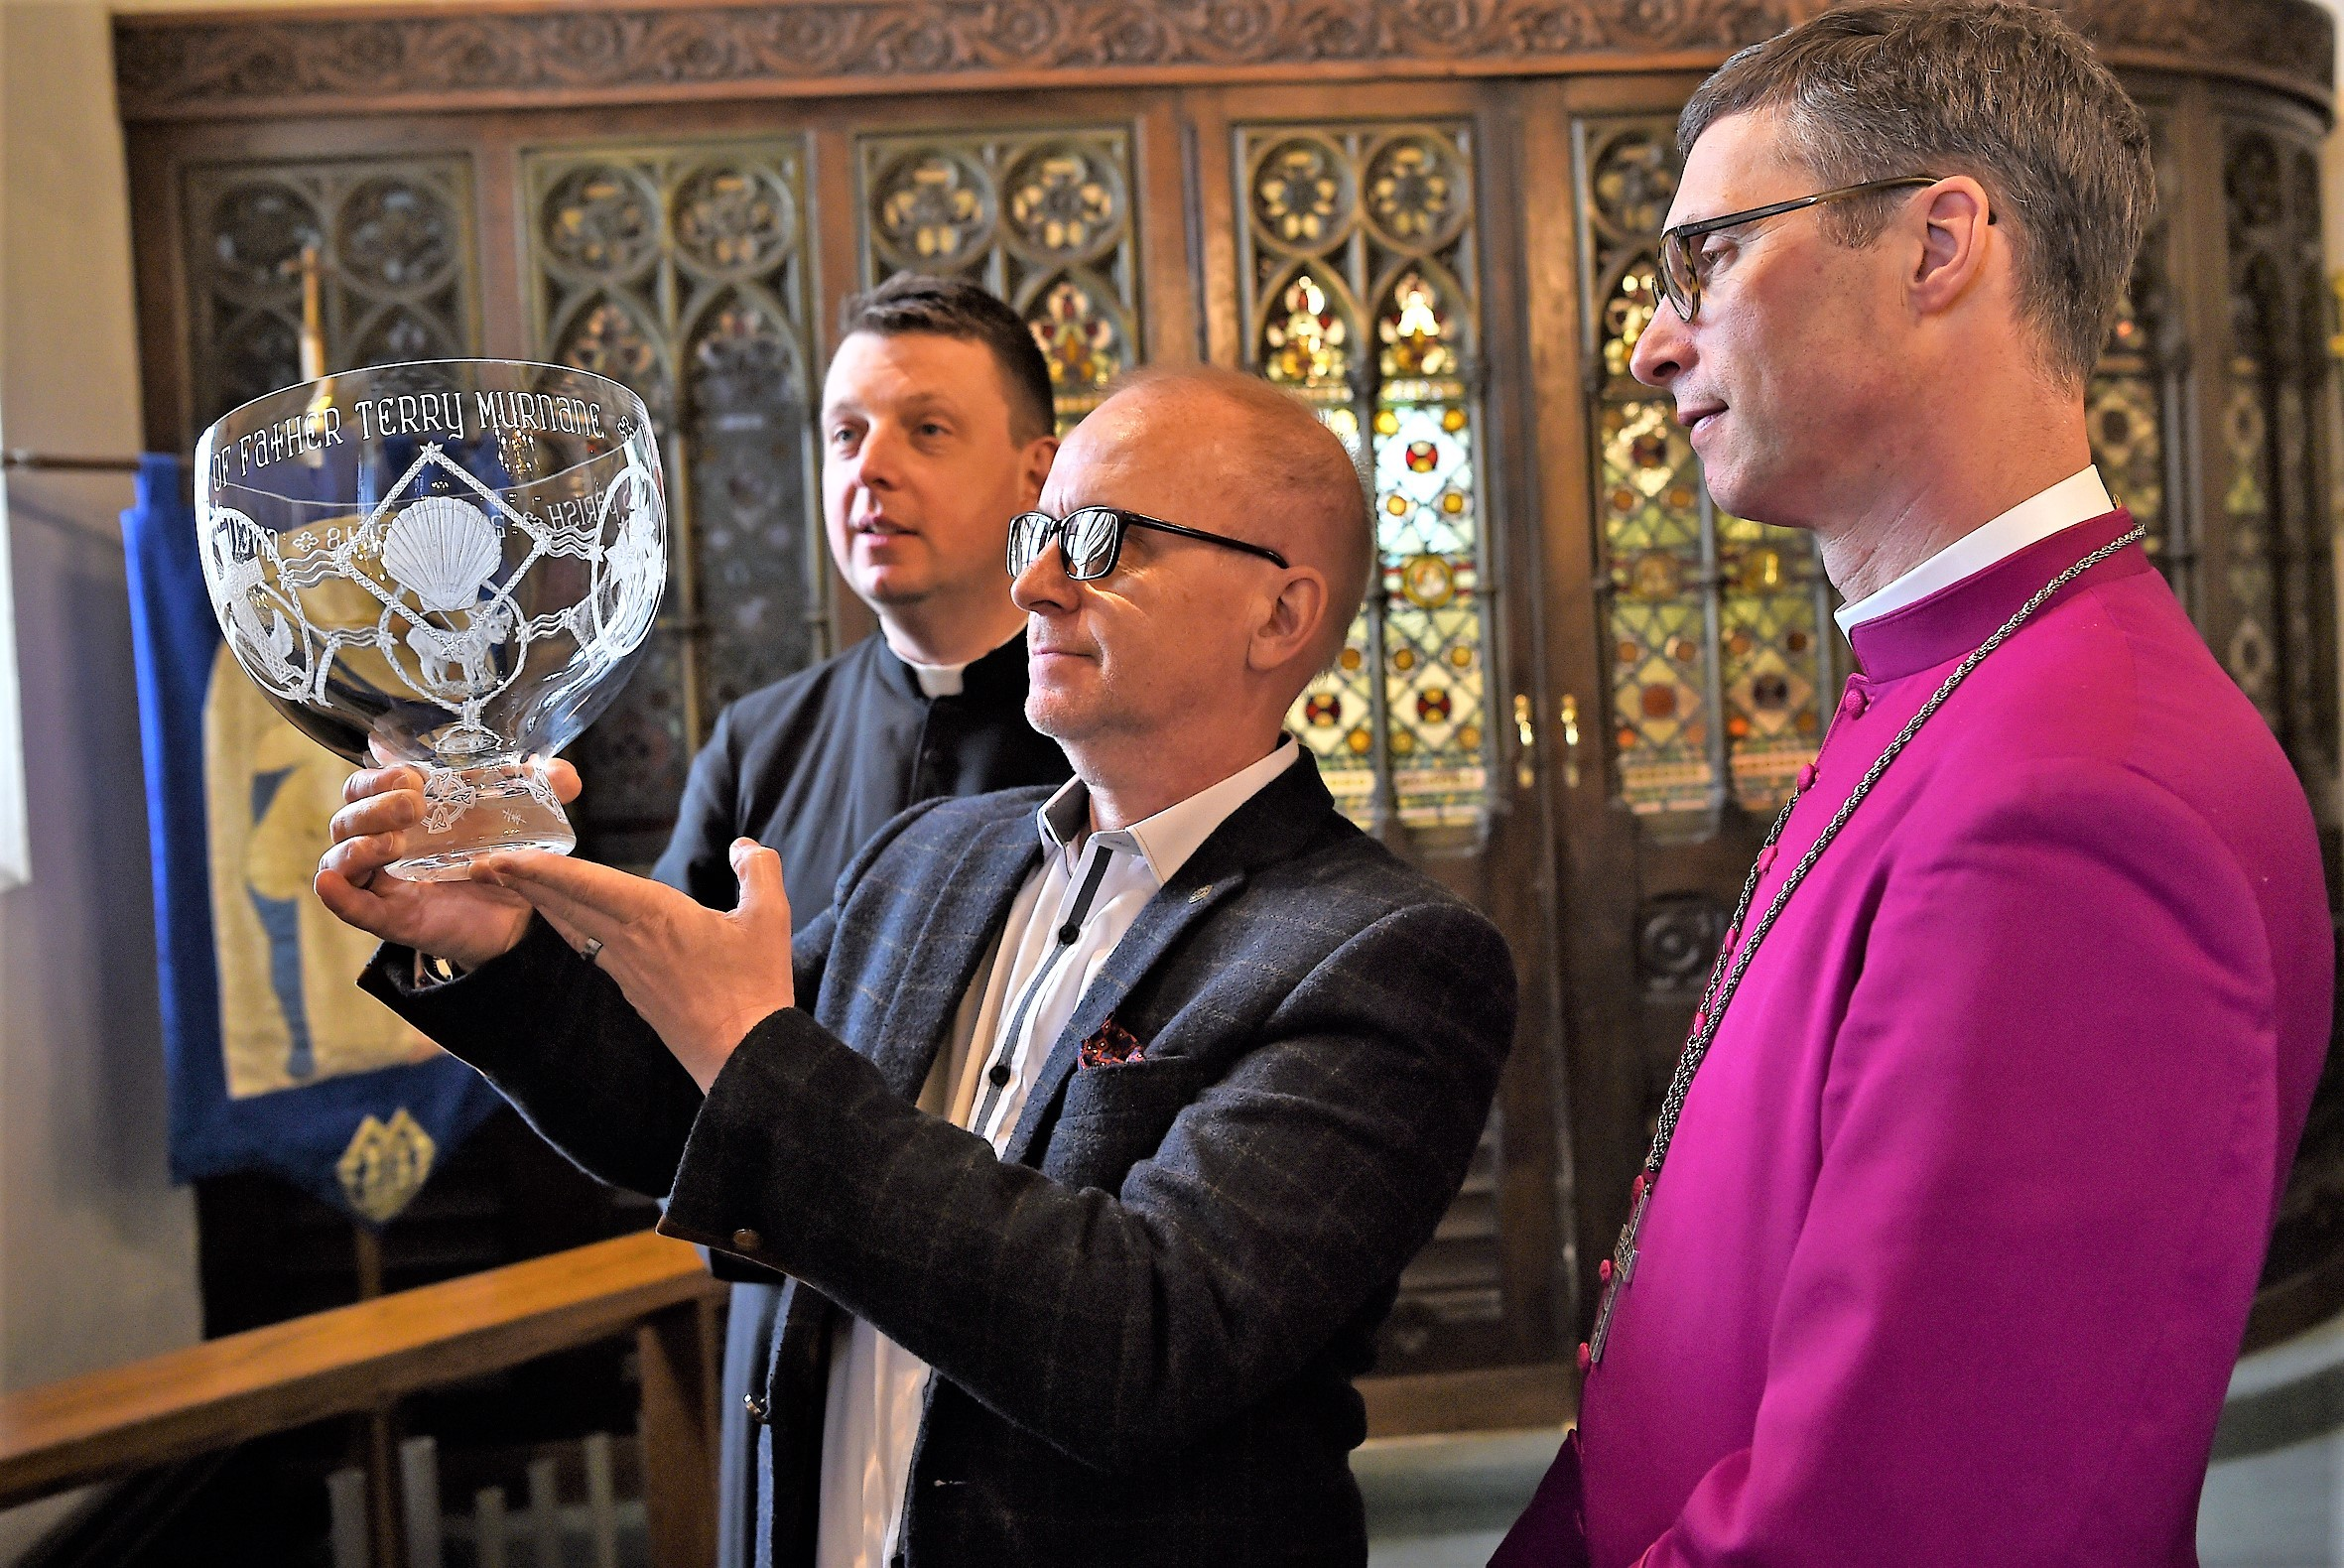 Artist Alexis Valentine holds one of the baptismal bowls as Father David Stephenson (left) and Bishop Philip look on